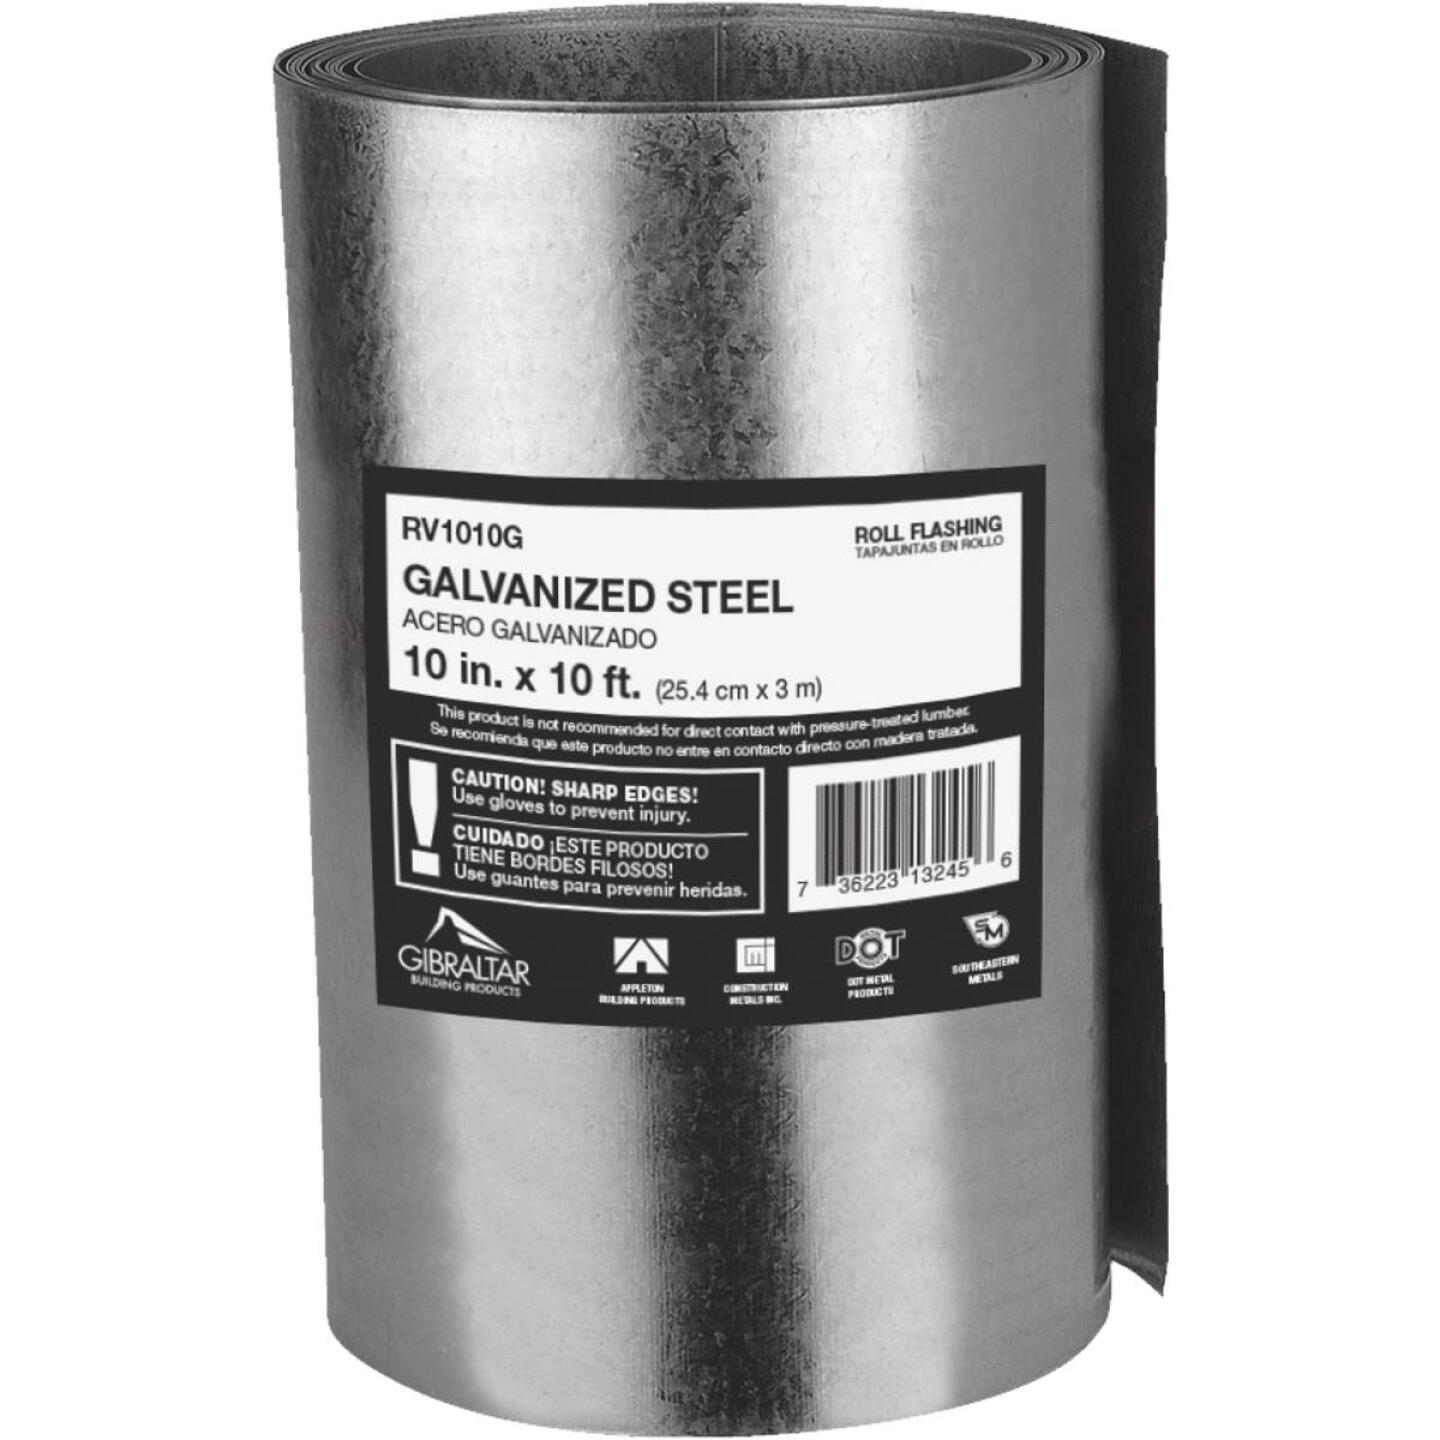 NorWesco 10 In. x 10 Ft. Mill Galvanized Roll Valley Flashing Image 1